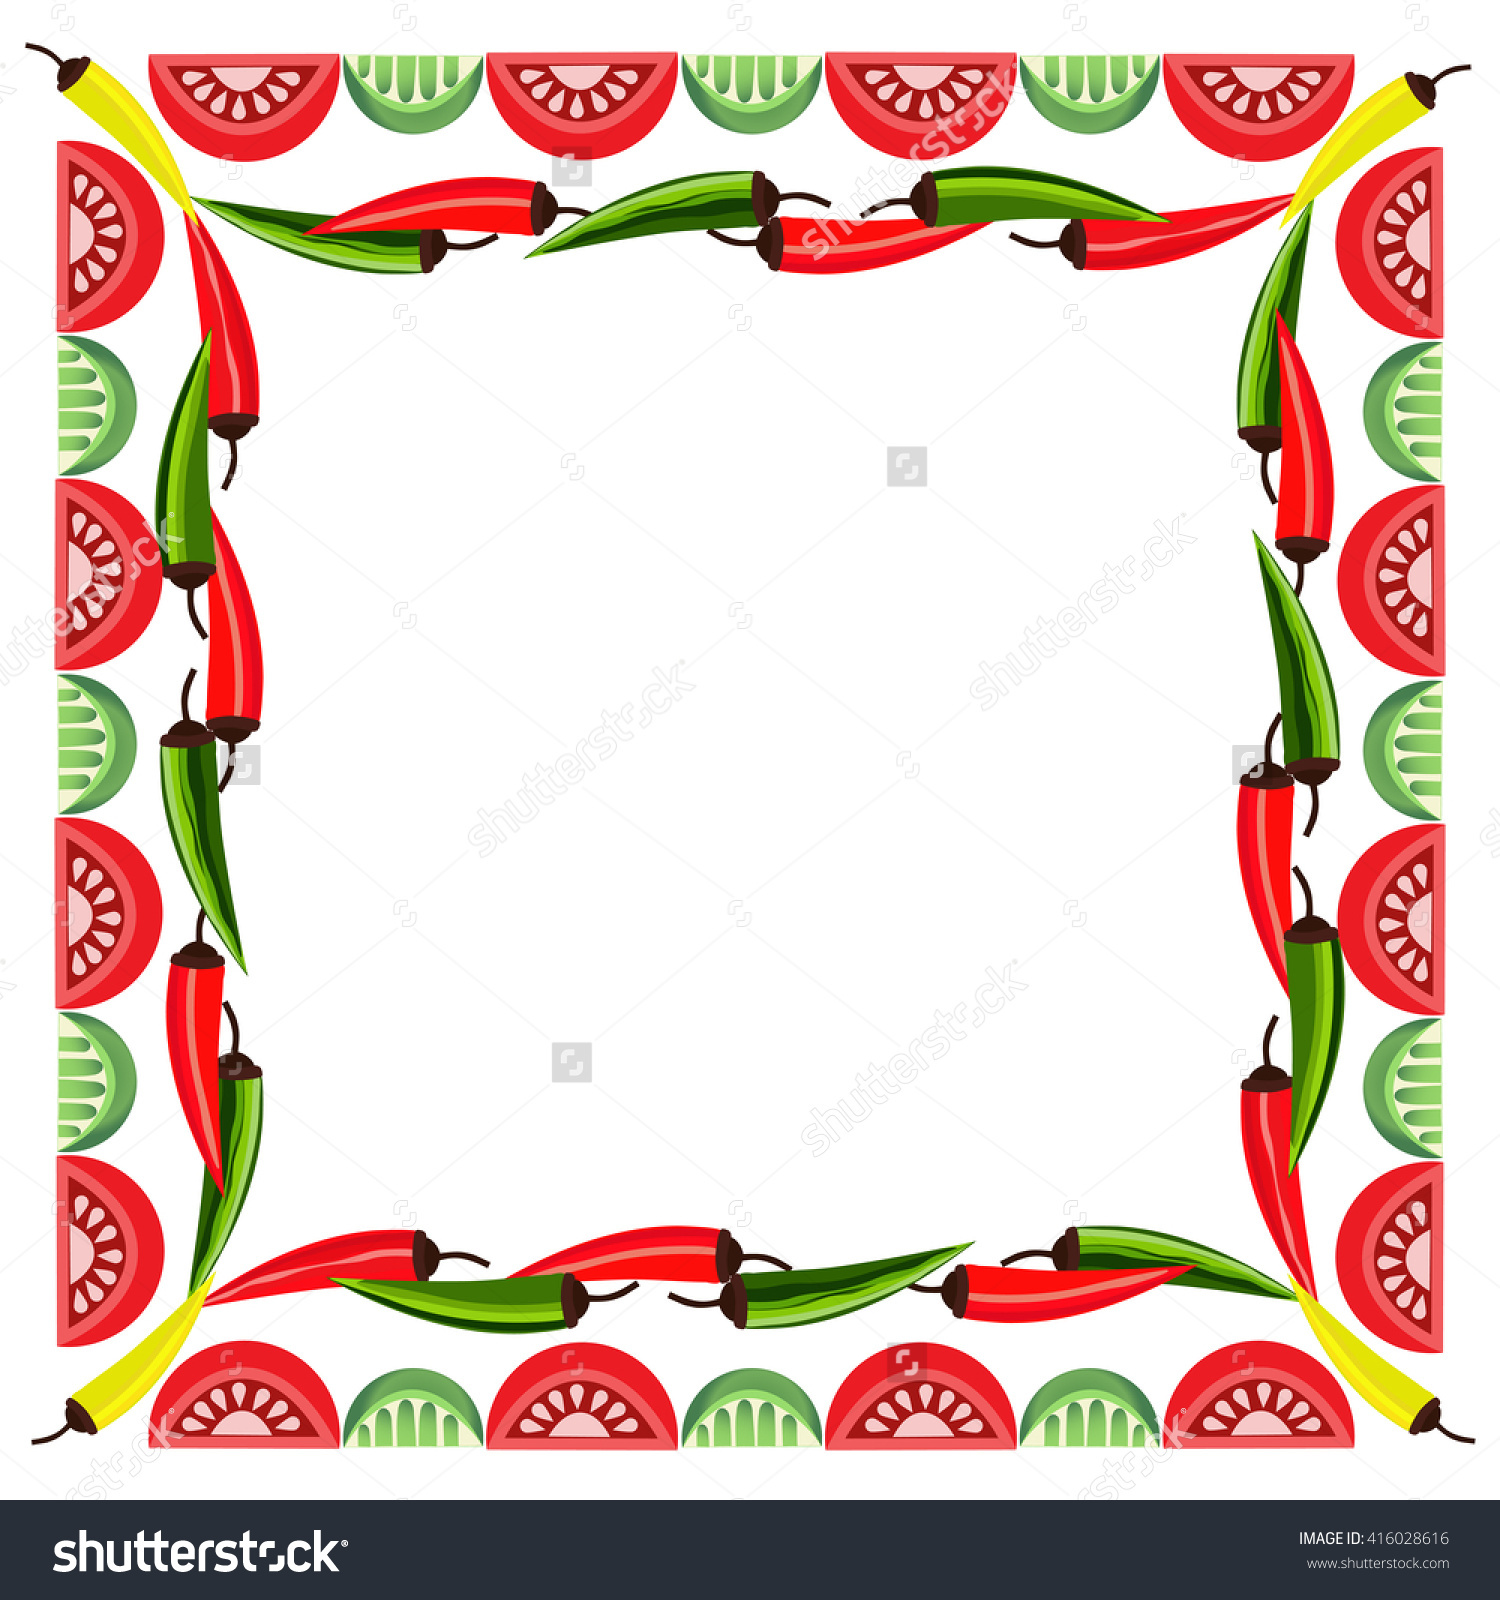 1500x1600 Mexican Food Clipart Borders Collection